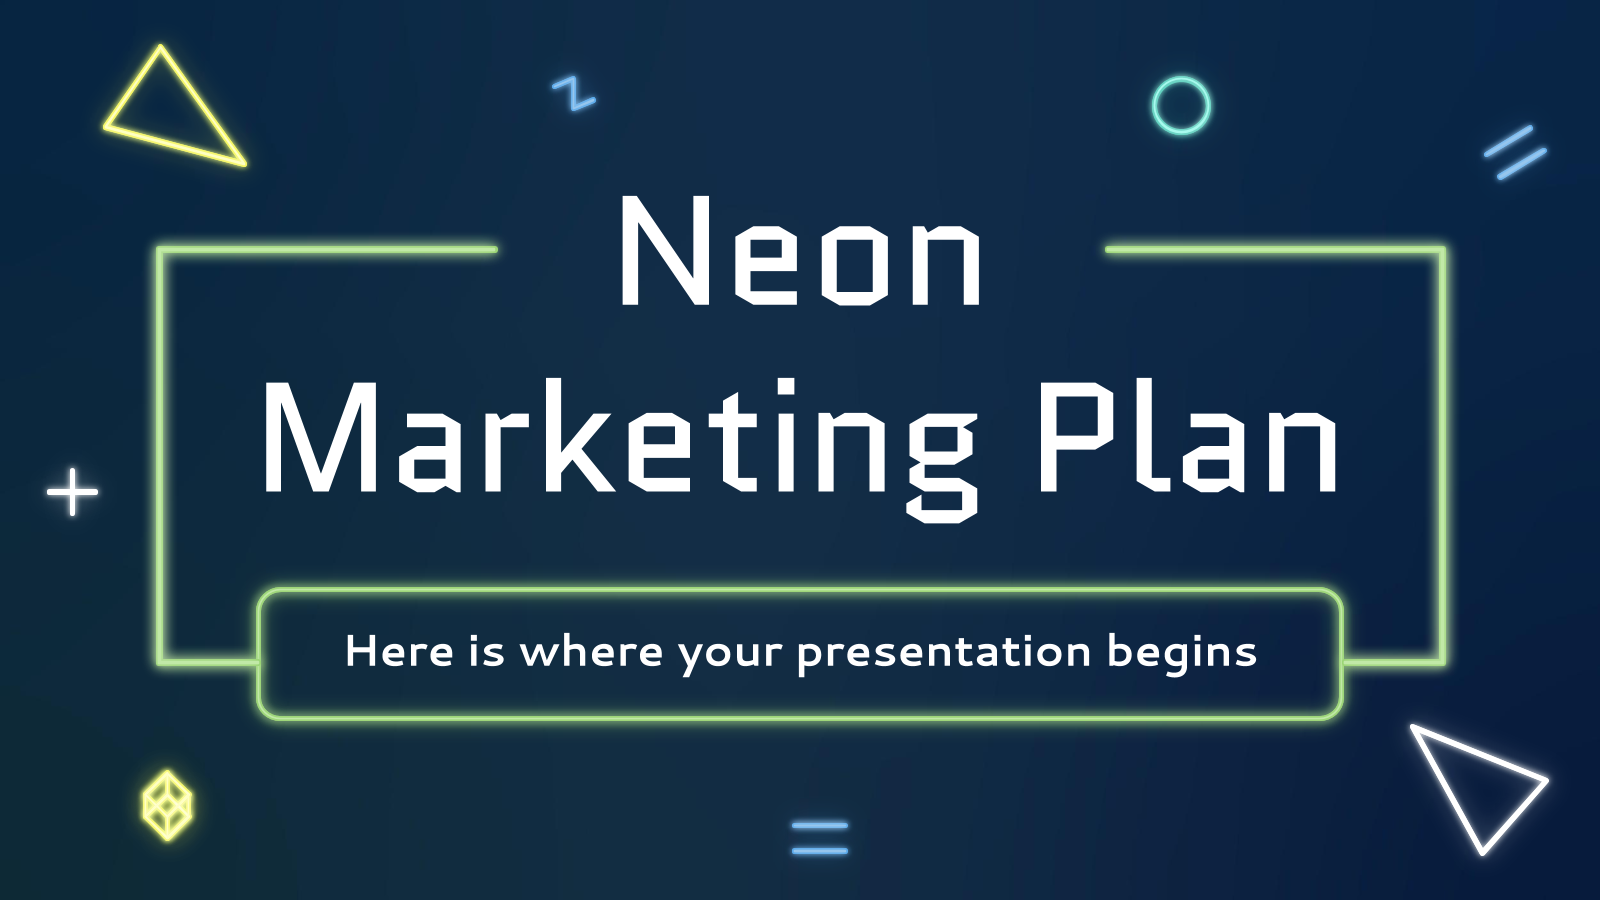 Neon Marketing Plan presentation template